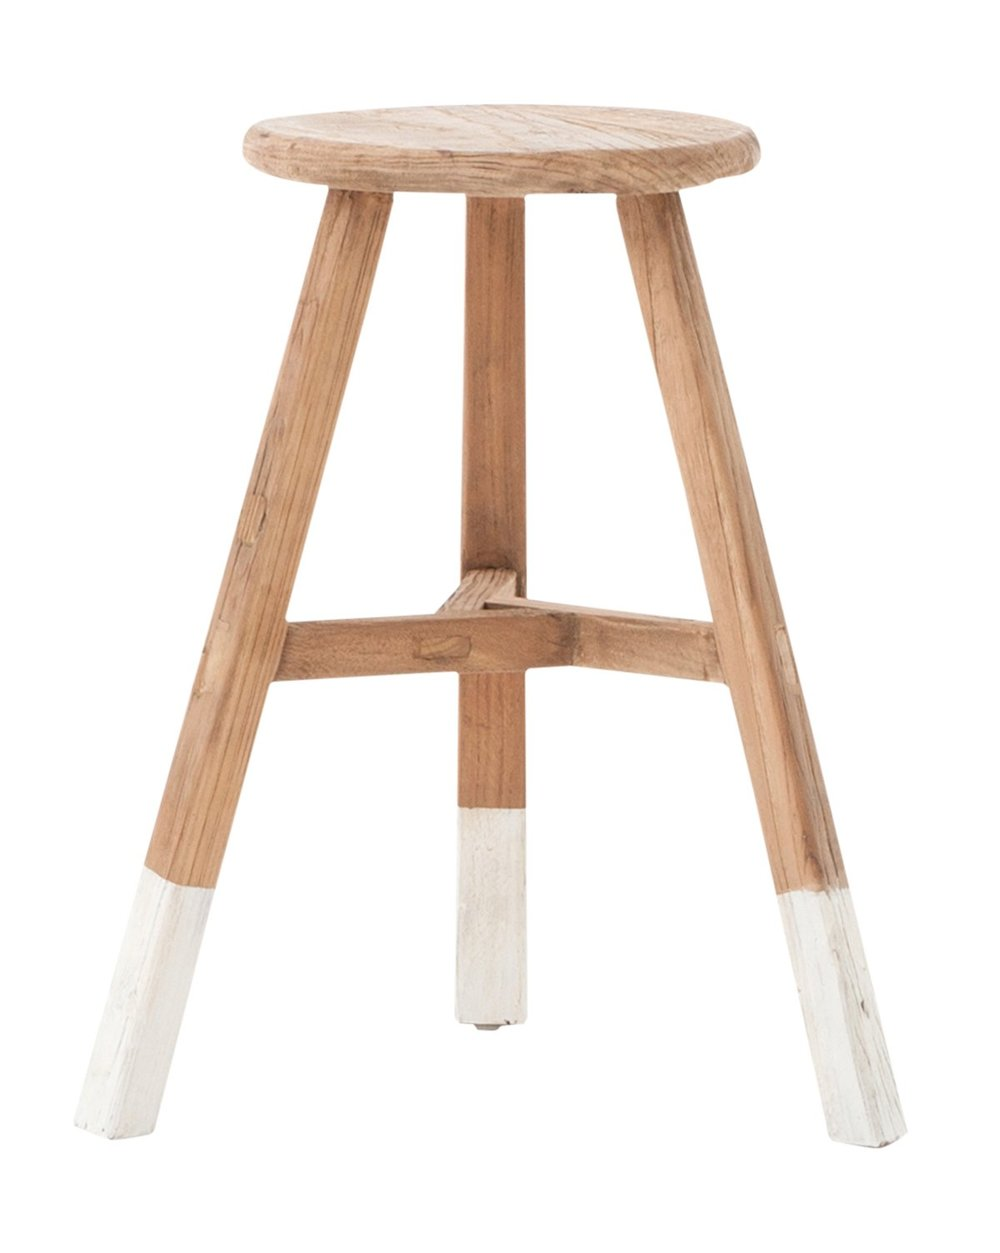 Tawnee_Dipped_Stool_4.jpg